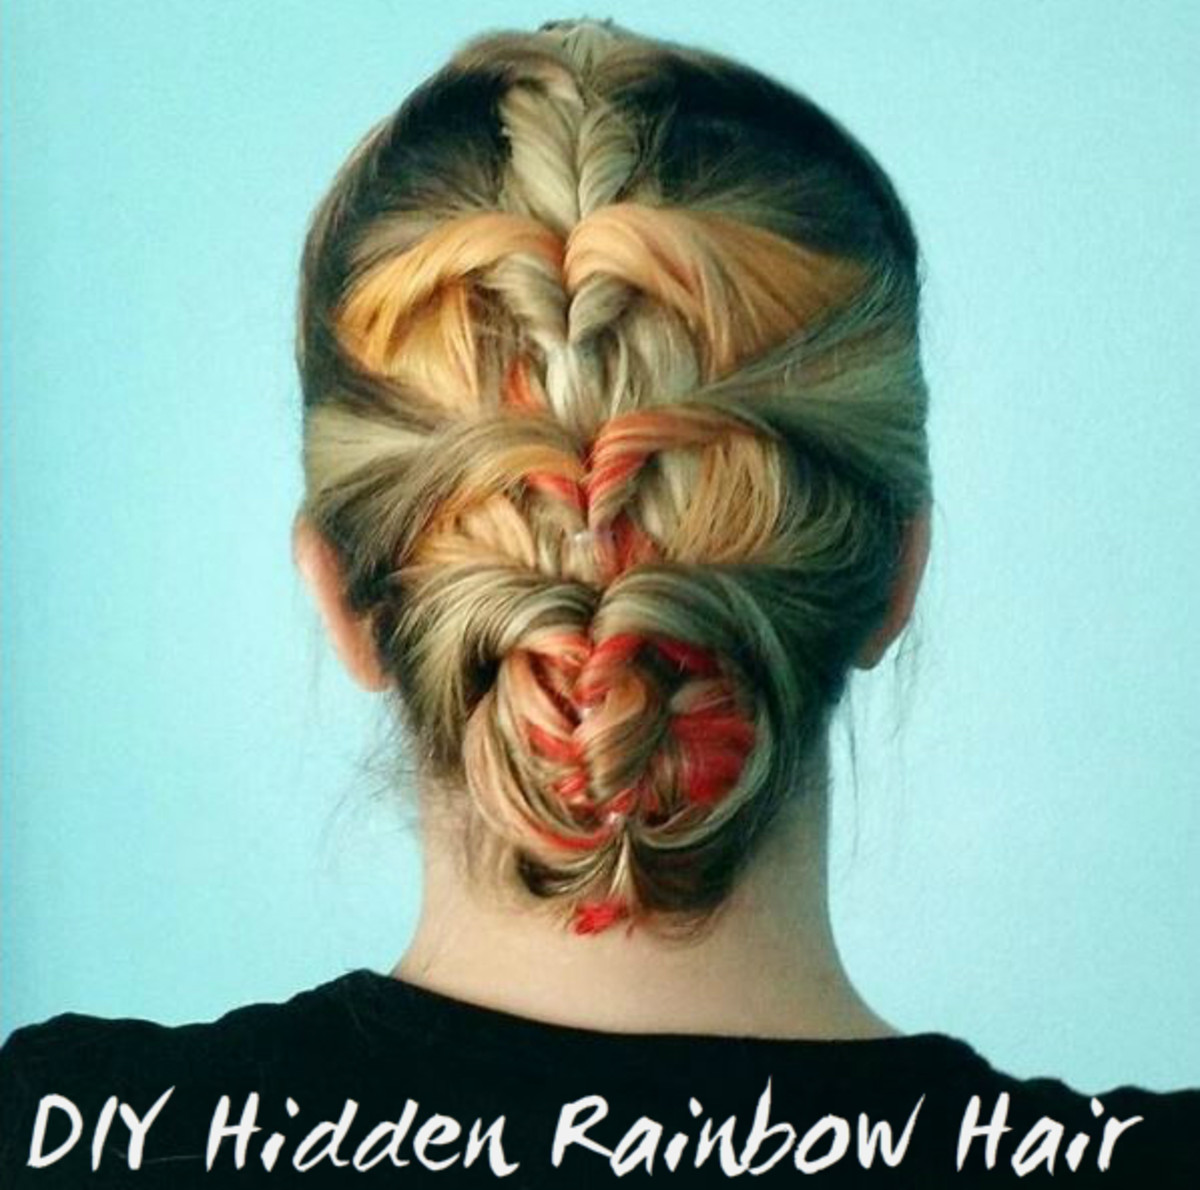 Hair diy how to do hidden rainbow hair bellatory source pmusecretfo Gallery